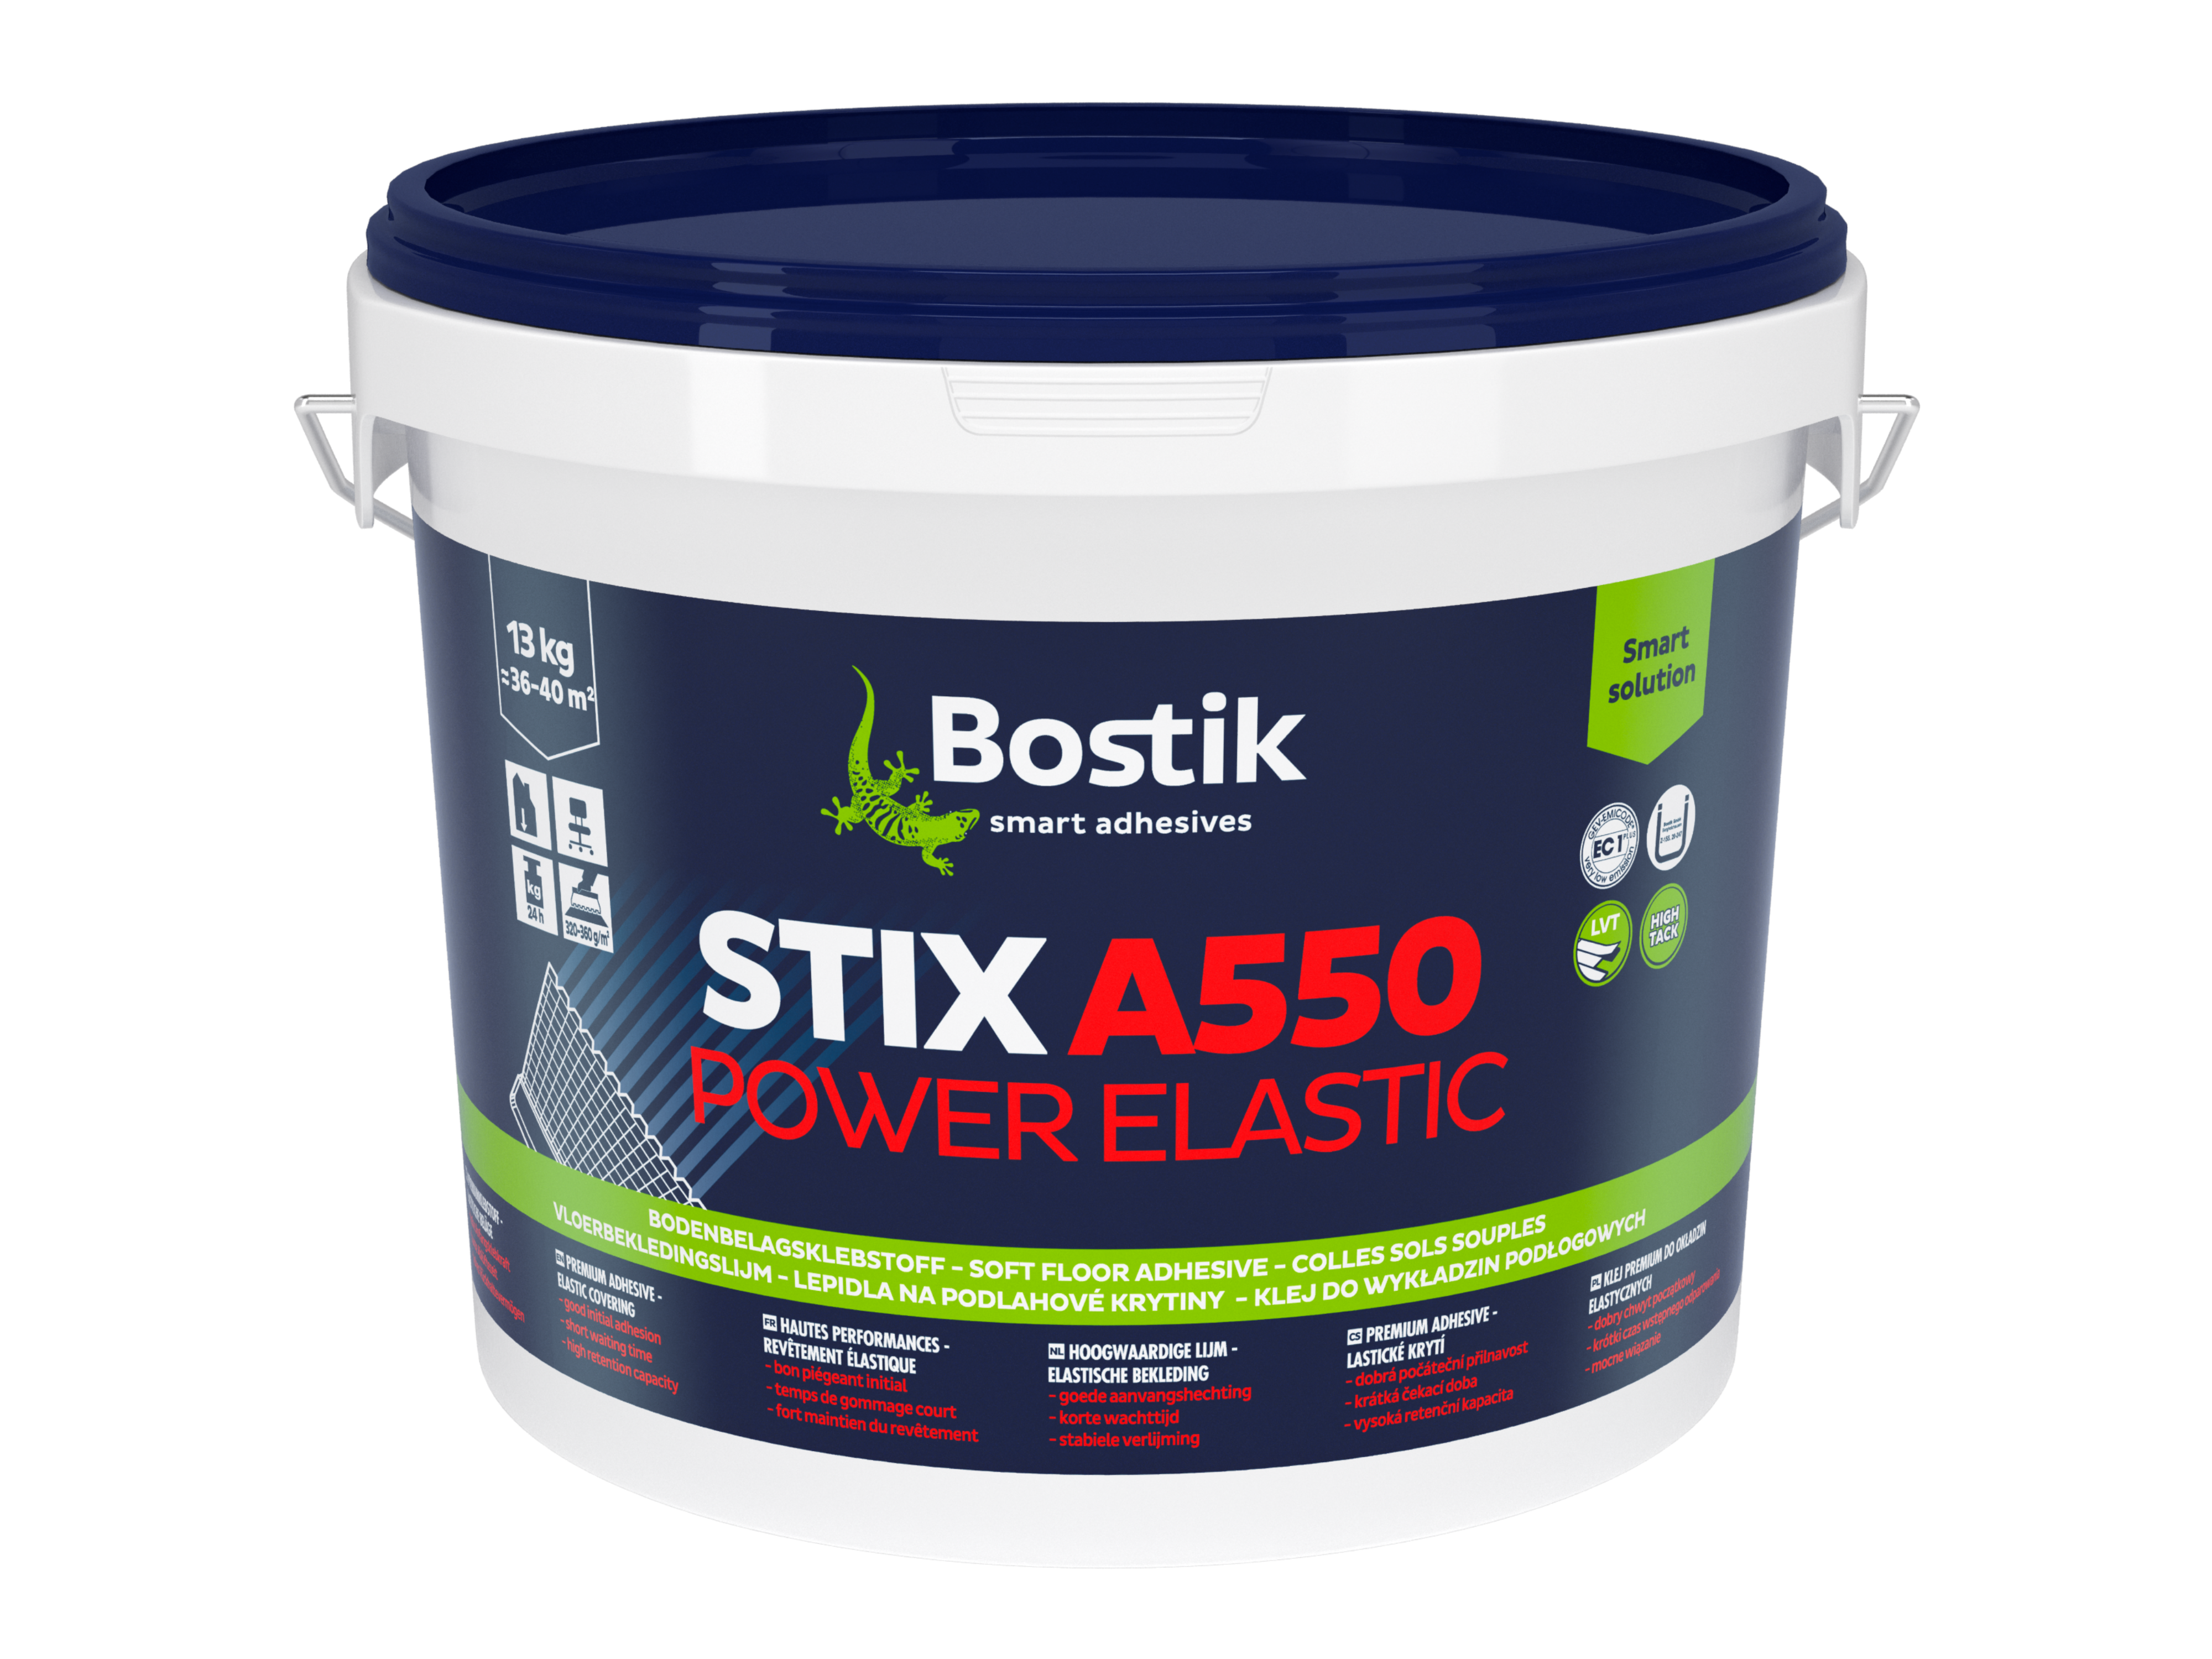 Bostik STIX A550 POWER ELASTIC 13kg 30615762.png